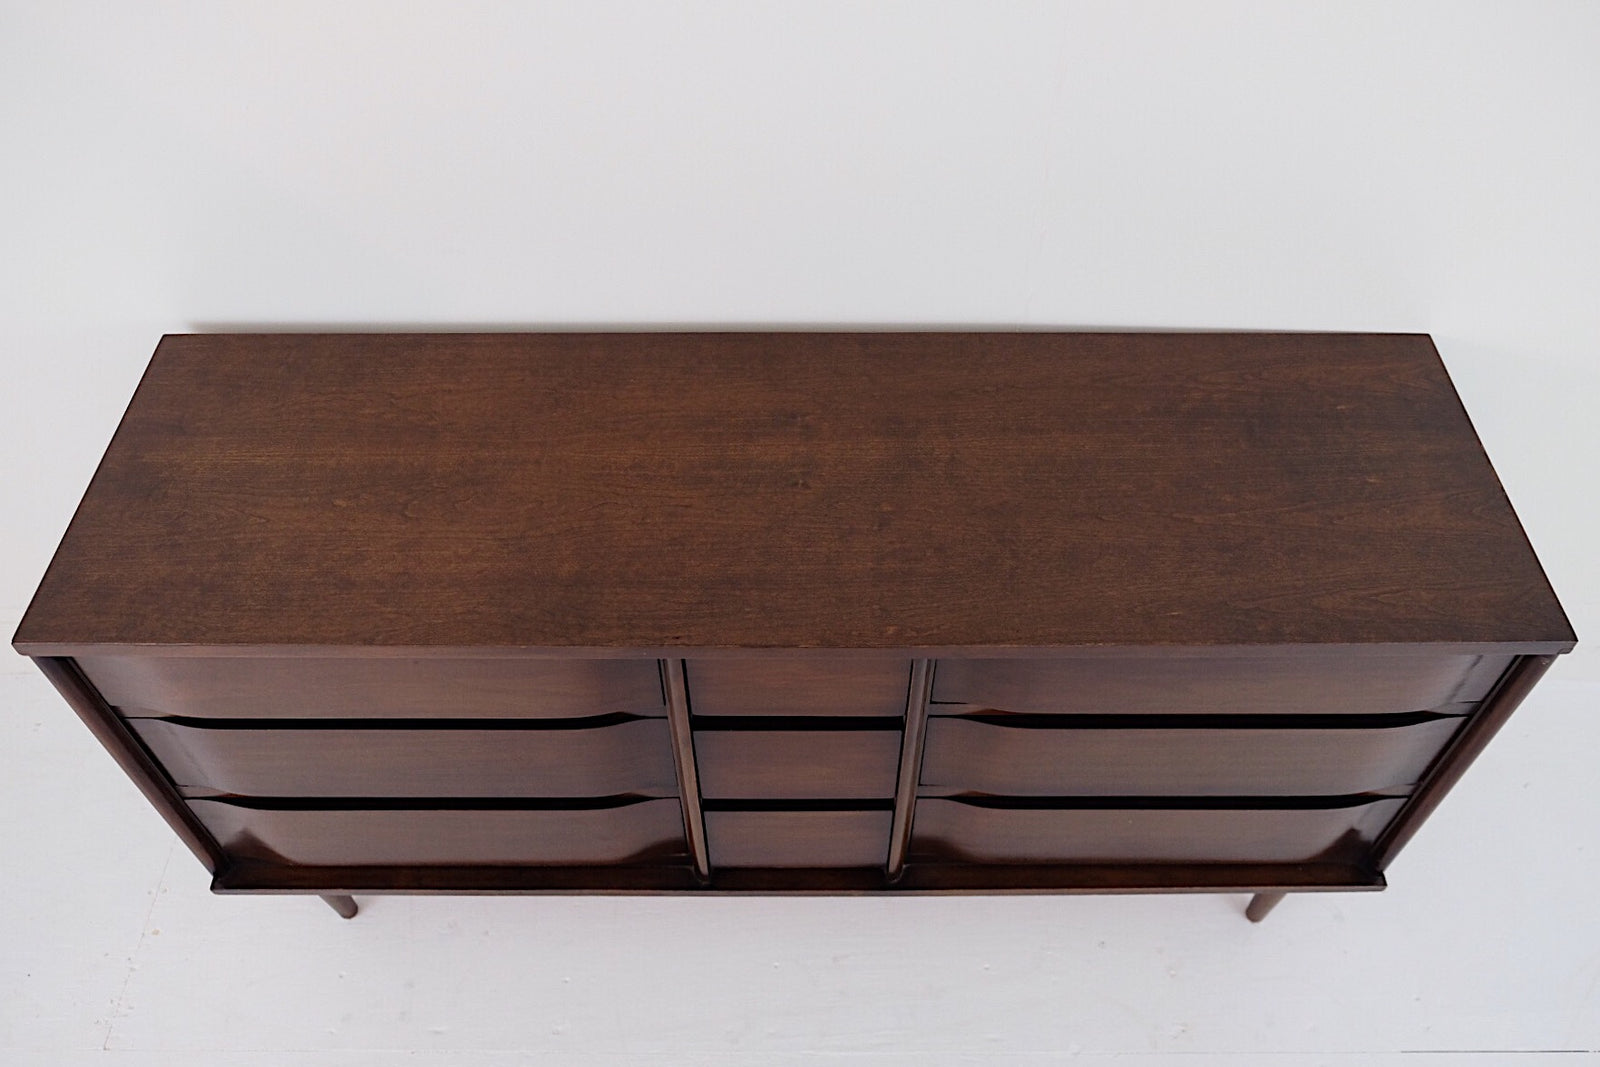 Dark Handsome Low Triple Dresser Mid Century Modern Curved Drawer Fronts Small Center Drawers